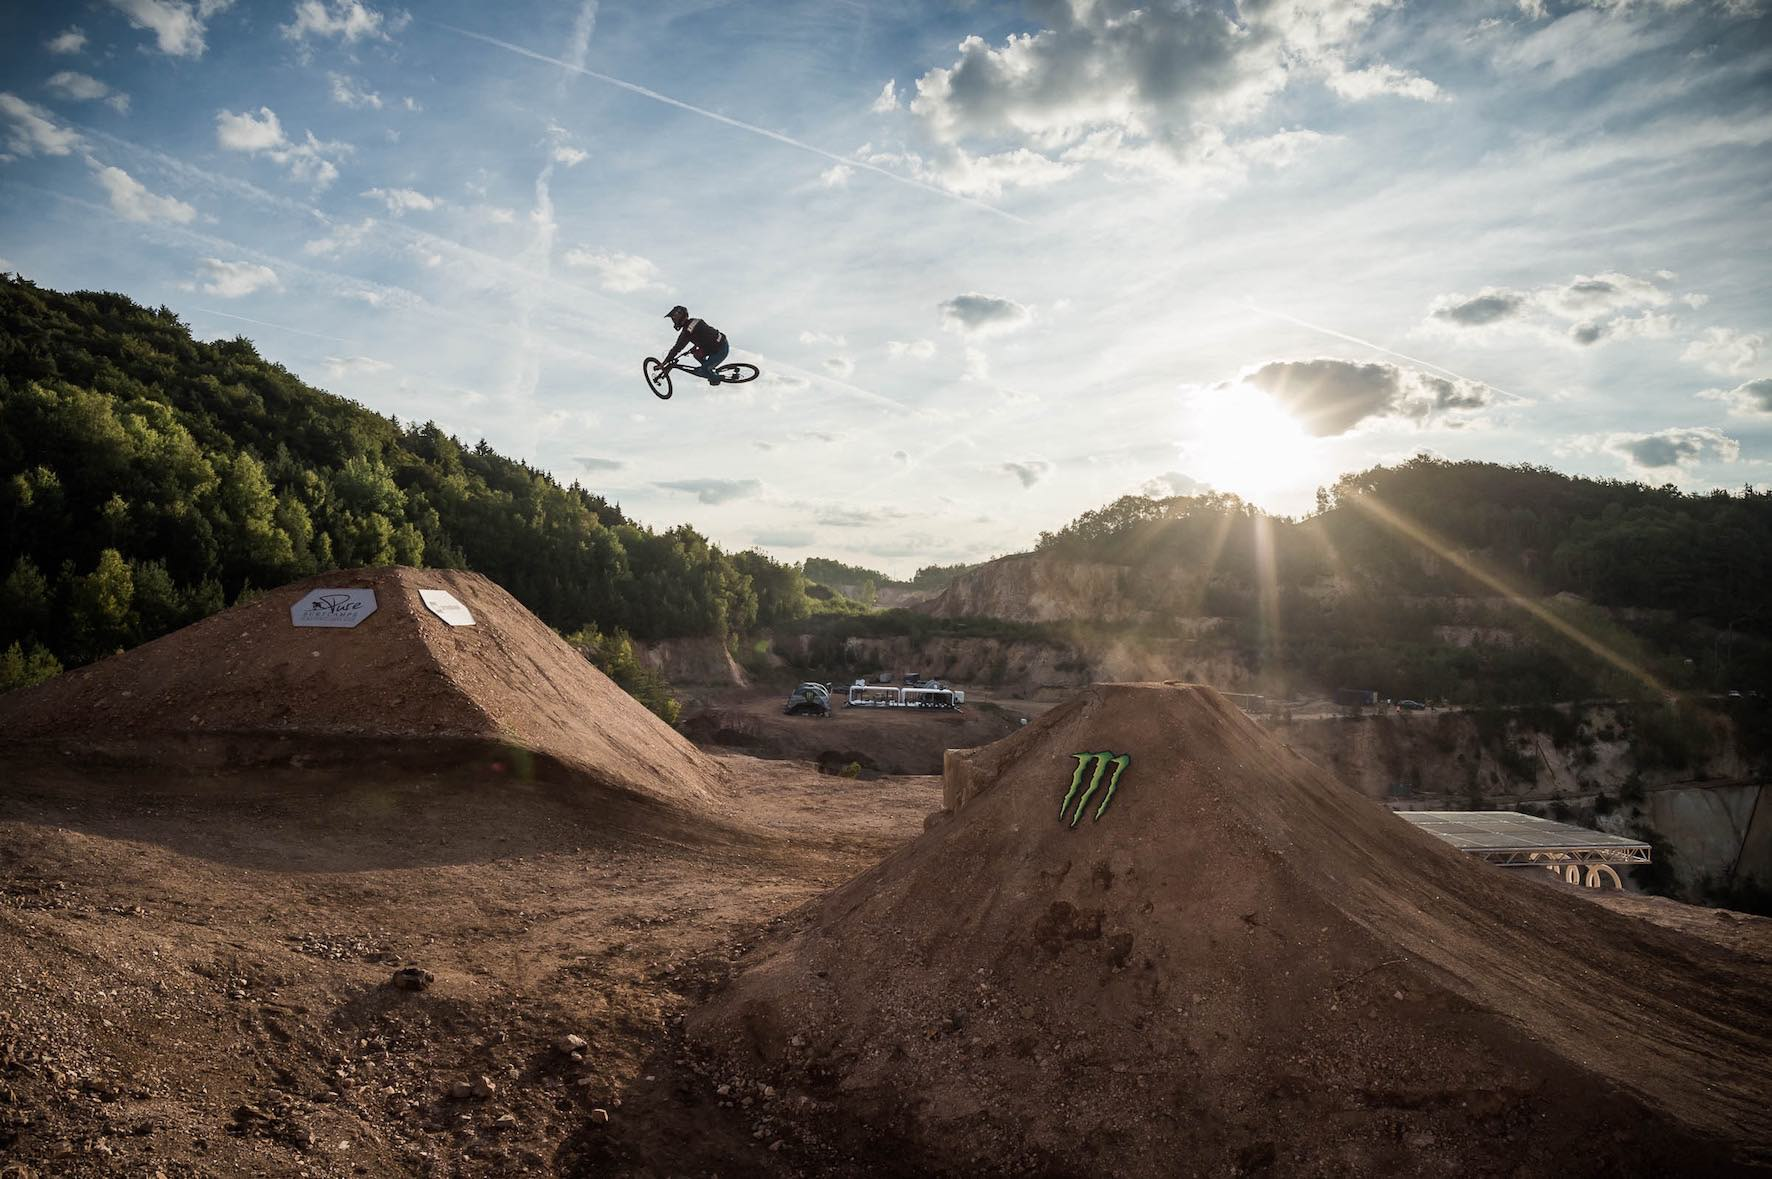 Playing a huge part and sending it just a big, we interview Clemens Kaudela about The Audi Nines Freeride and Slopestyle Mountain Bike event.